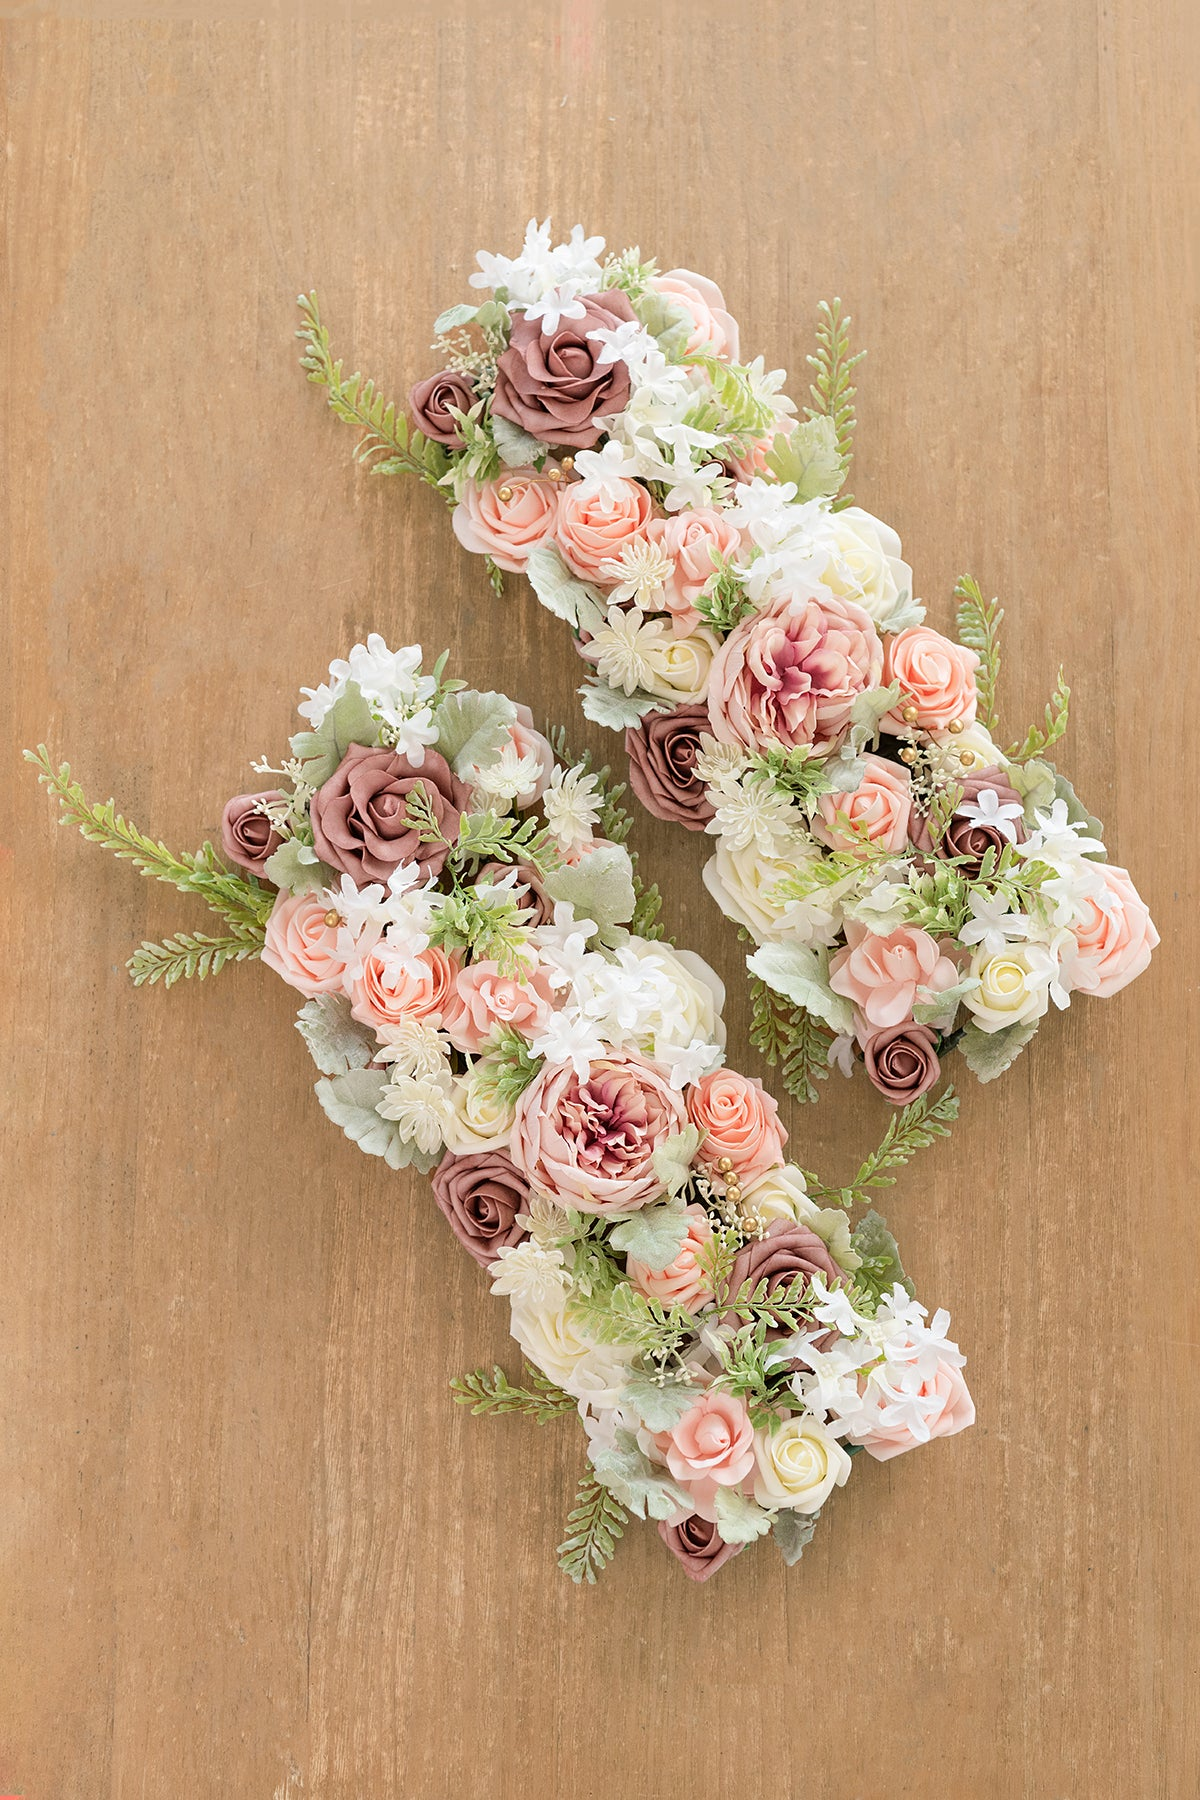 Large Rectangle Flower Arrangements (Set of 2) - Dusty Rose